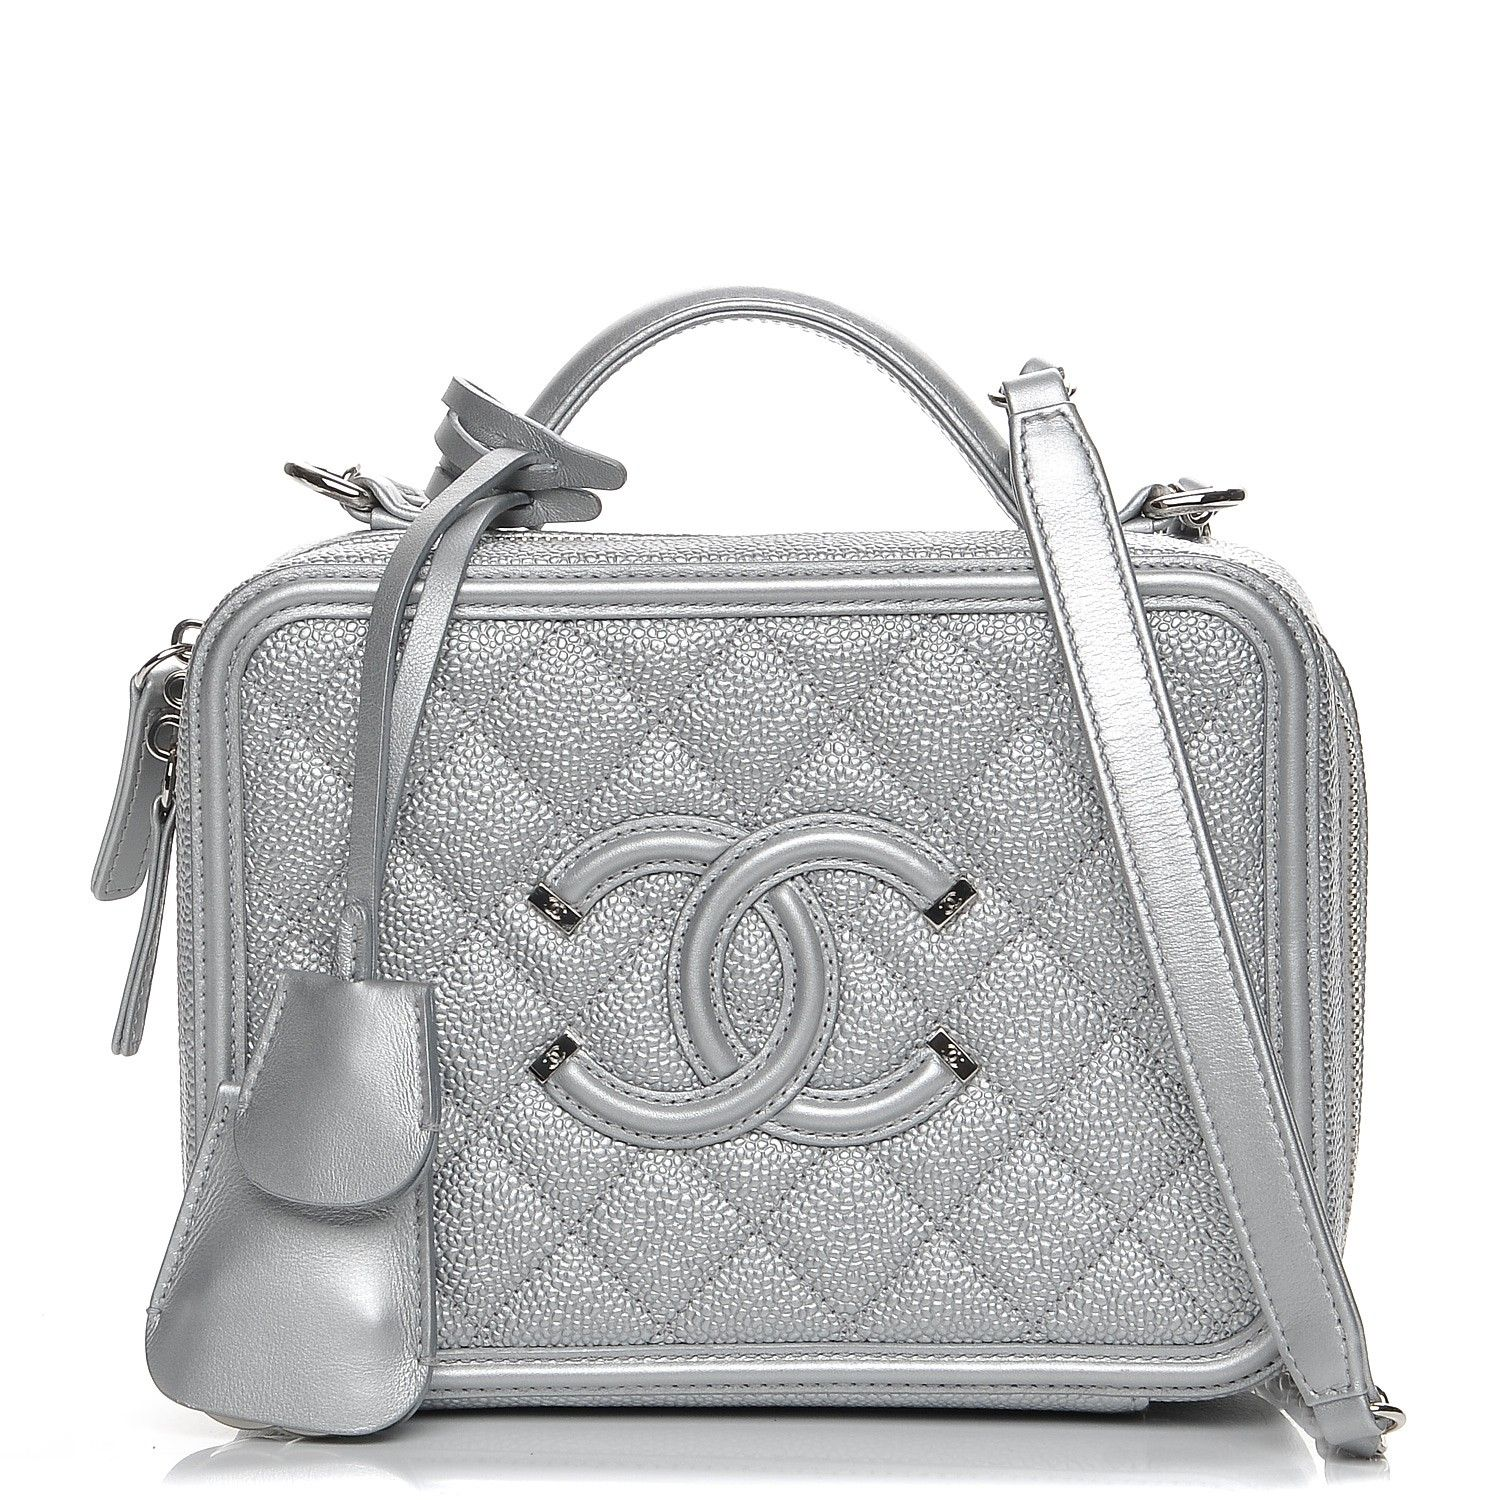 8e453b308d27 This is an authentic CHANEL Metallic Caviar Quilted Medium CC Filigree  Vanity Case in Silver.